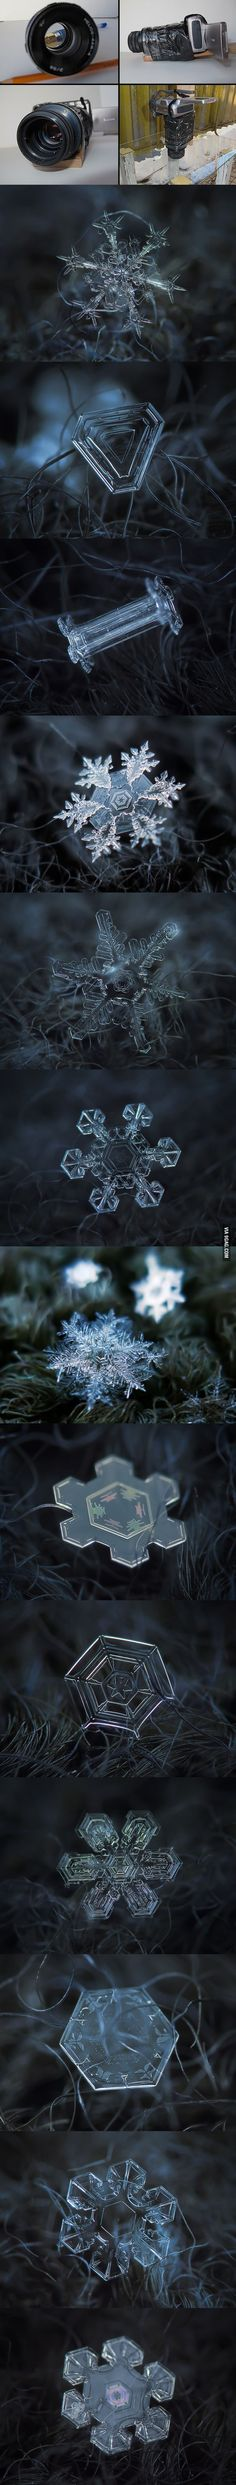 Russian photographer Alexey Kljatov uses cheap home-made camera rig to take stunning close-ups of snowflakes